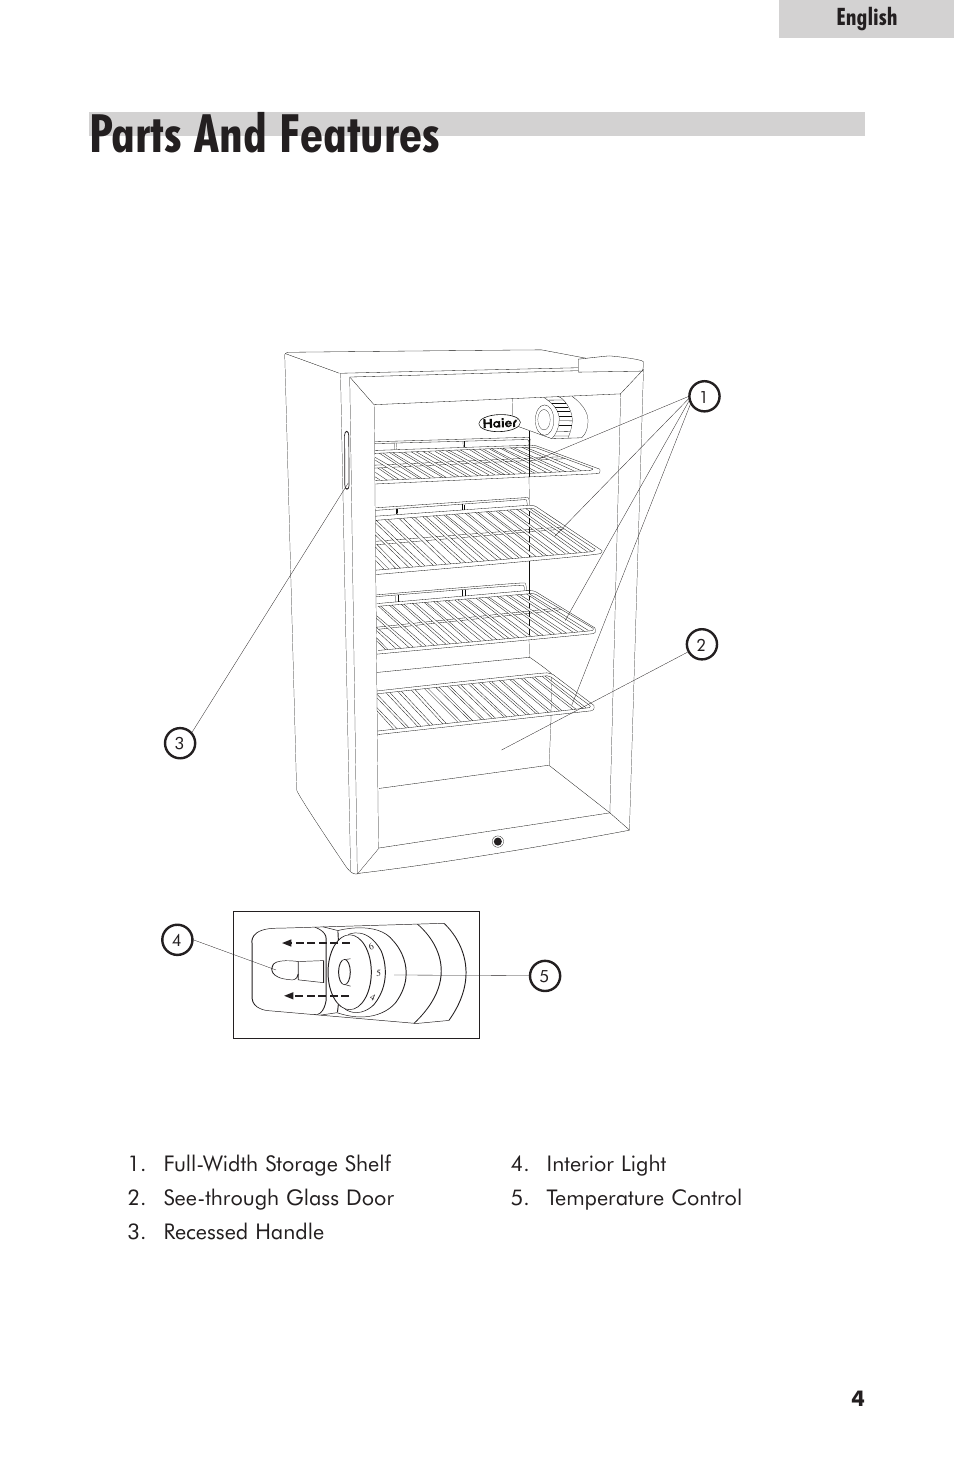 parts and features english haier hc125fvs user manual page 5 48 rh manualsdir com Haier Portable Air Conditioner Manual Haier Room Air Conditioner Manual